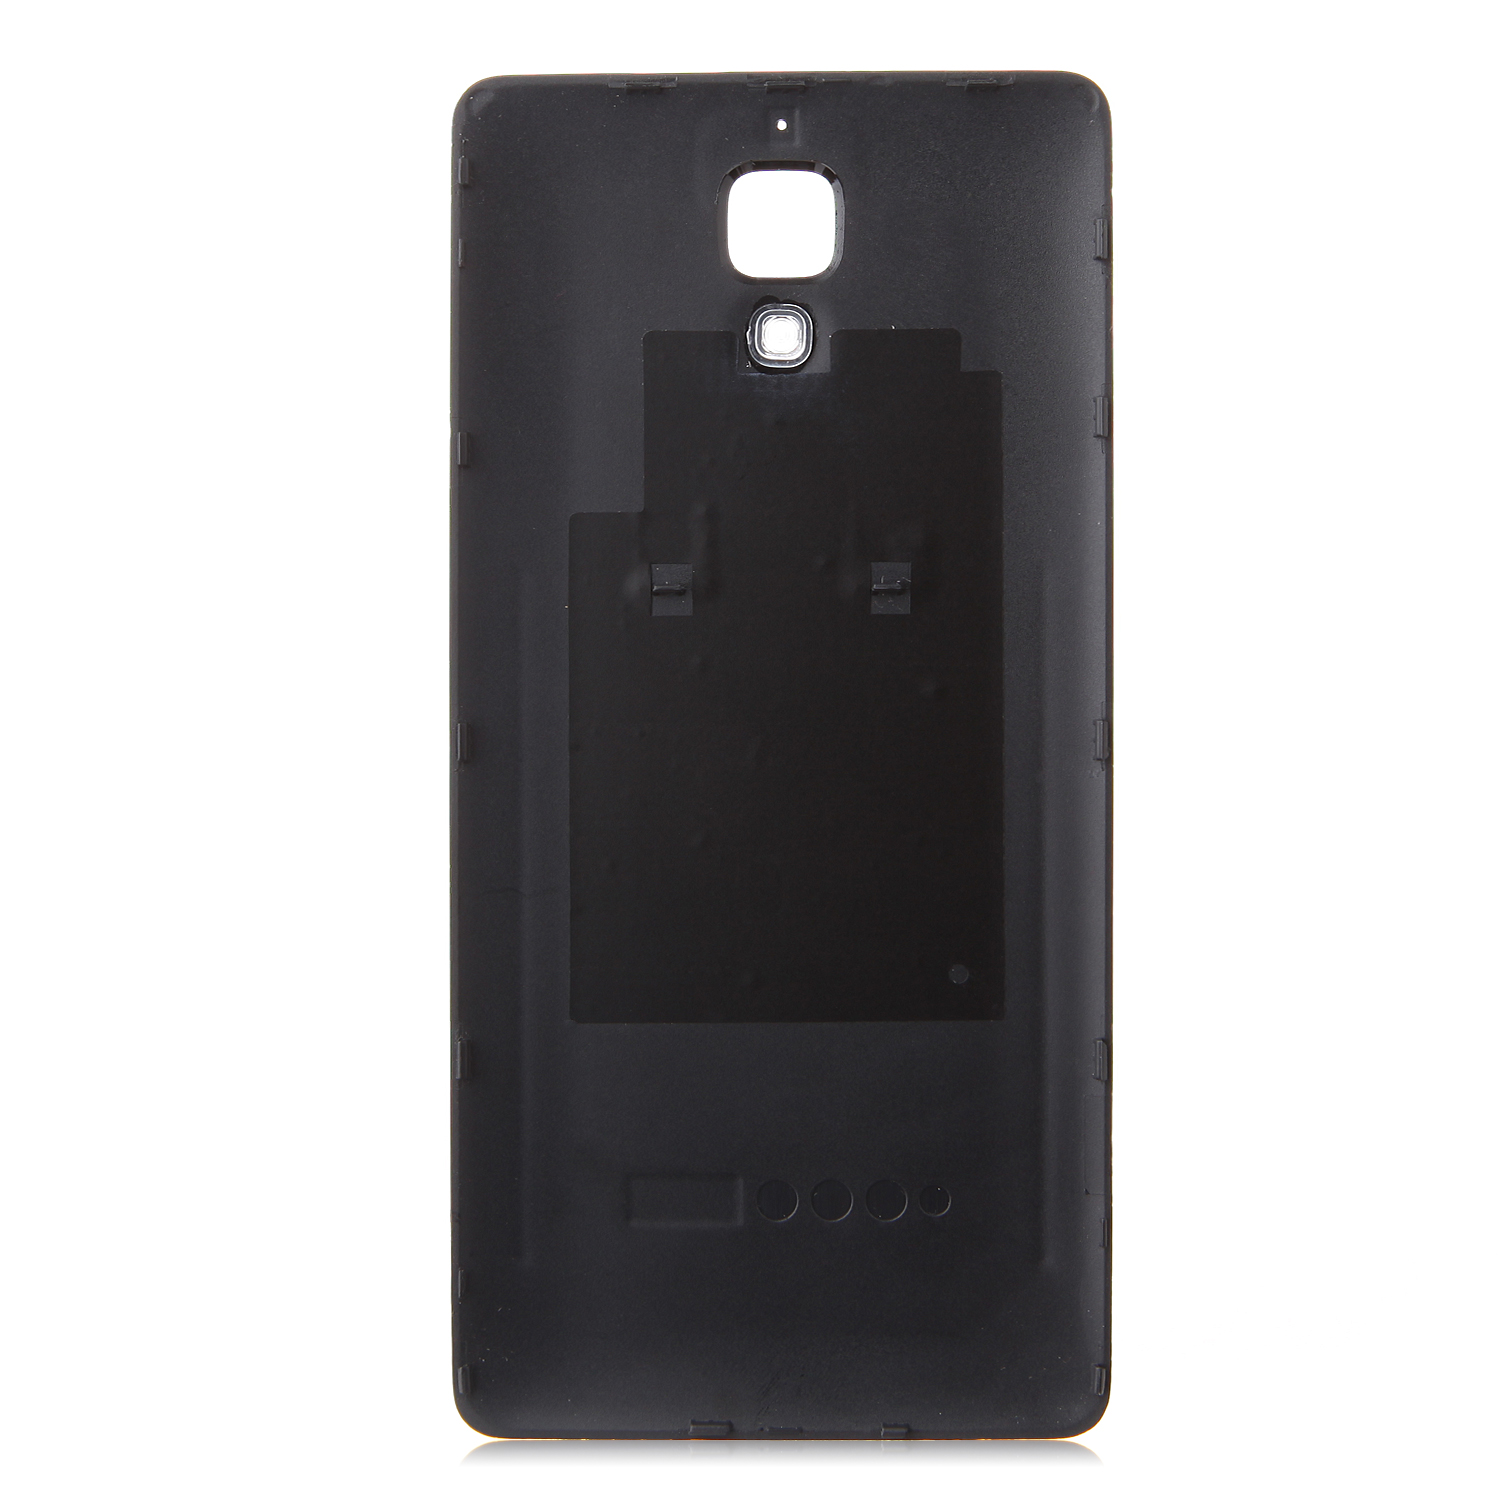 Replacement Battery Cover Back Case for XIAOMI 2A Smartphone Black